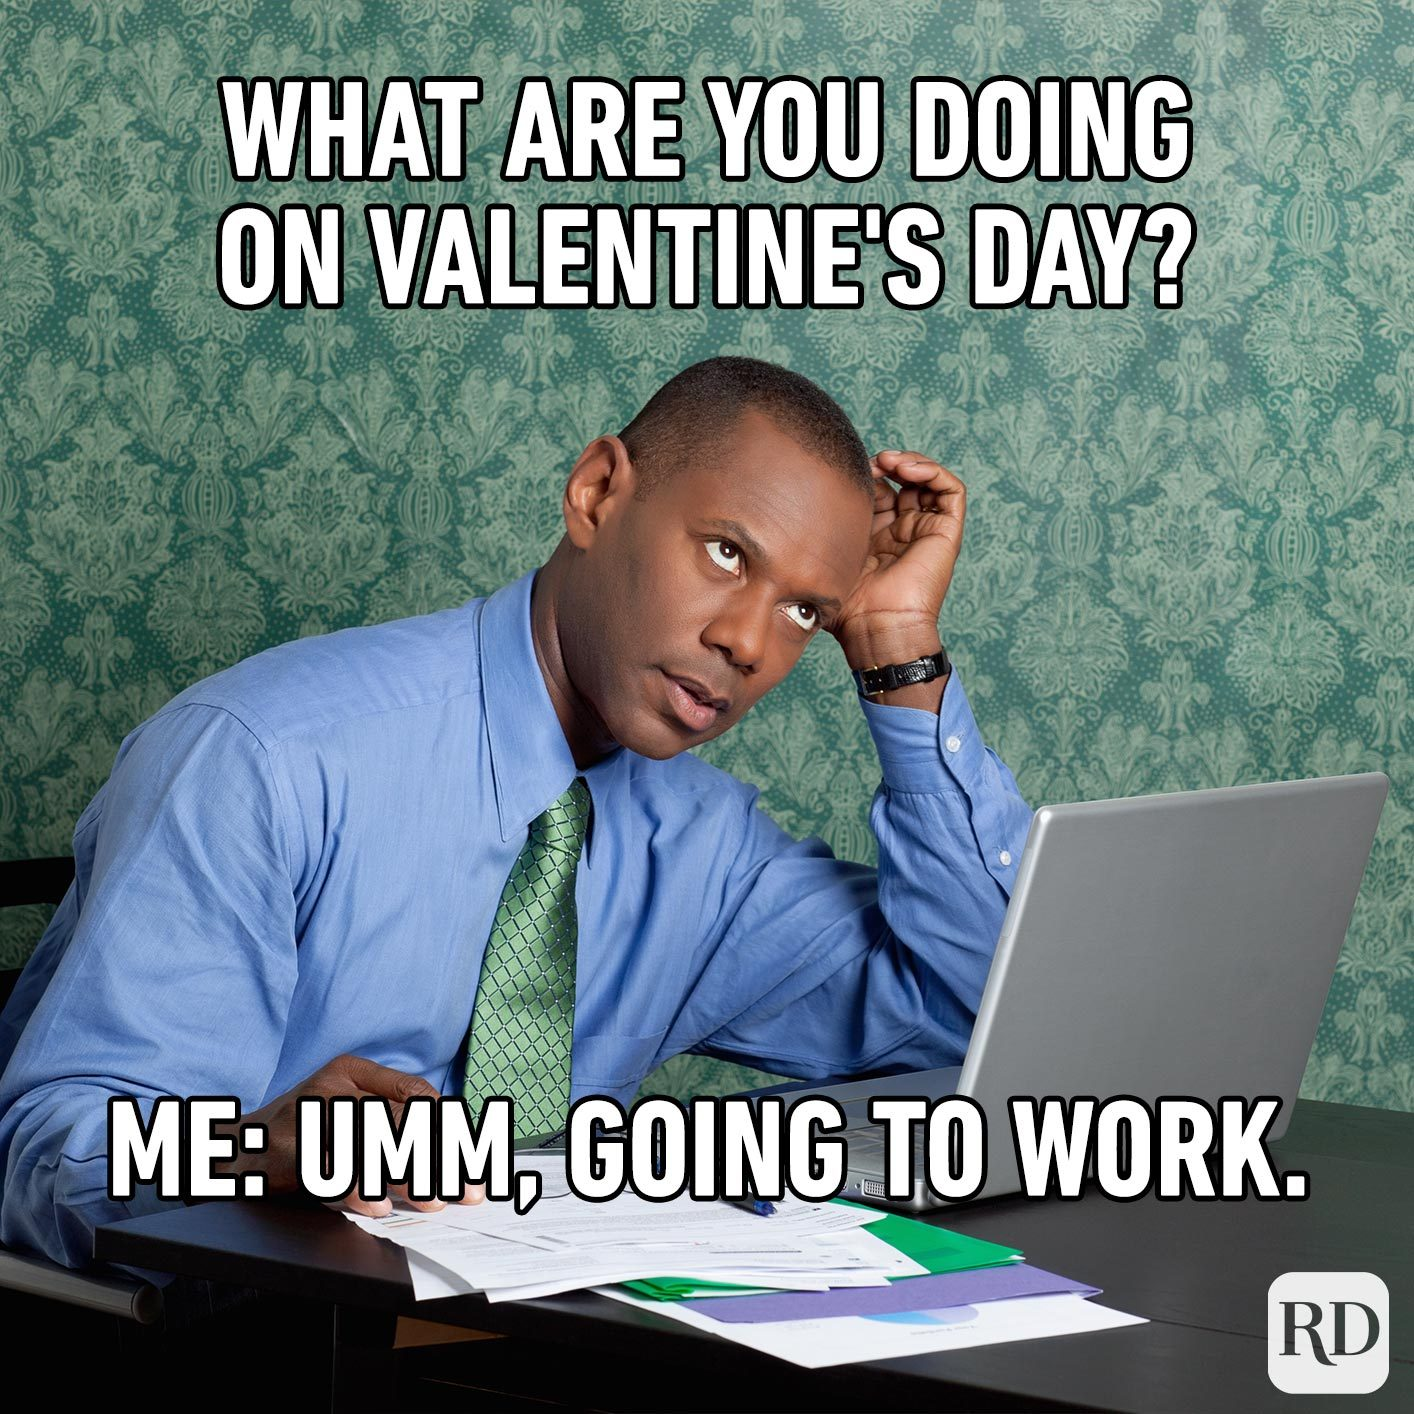 Man in office. Meme text: What are you doing on Valentine's Day? Me: Umm, going to work.